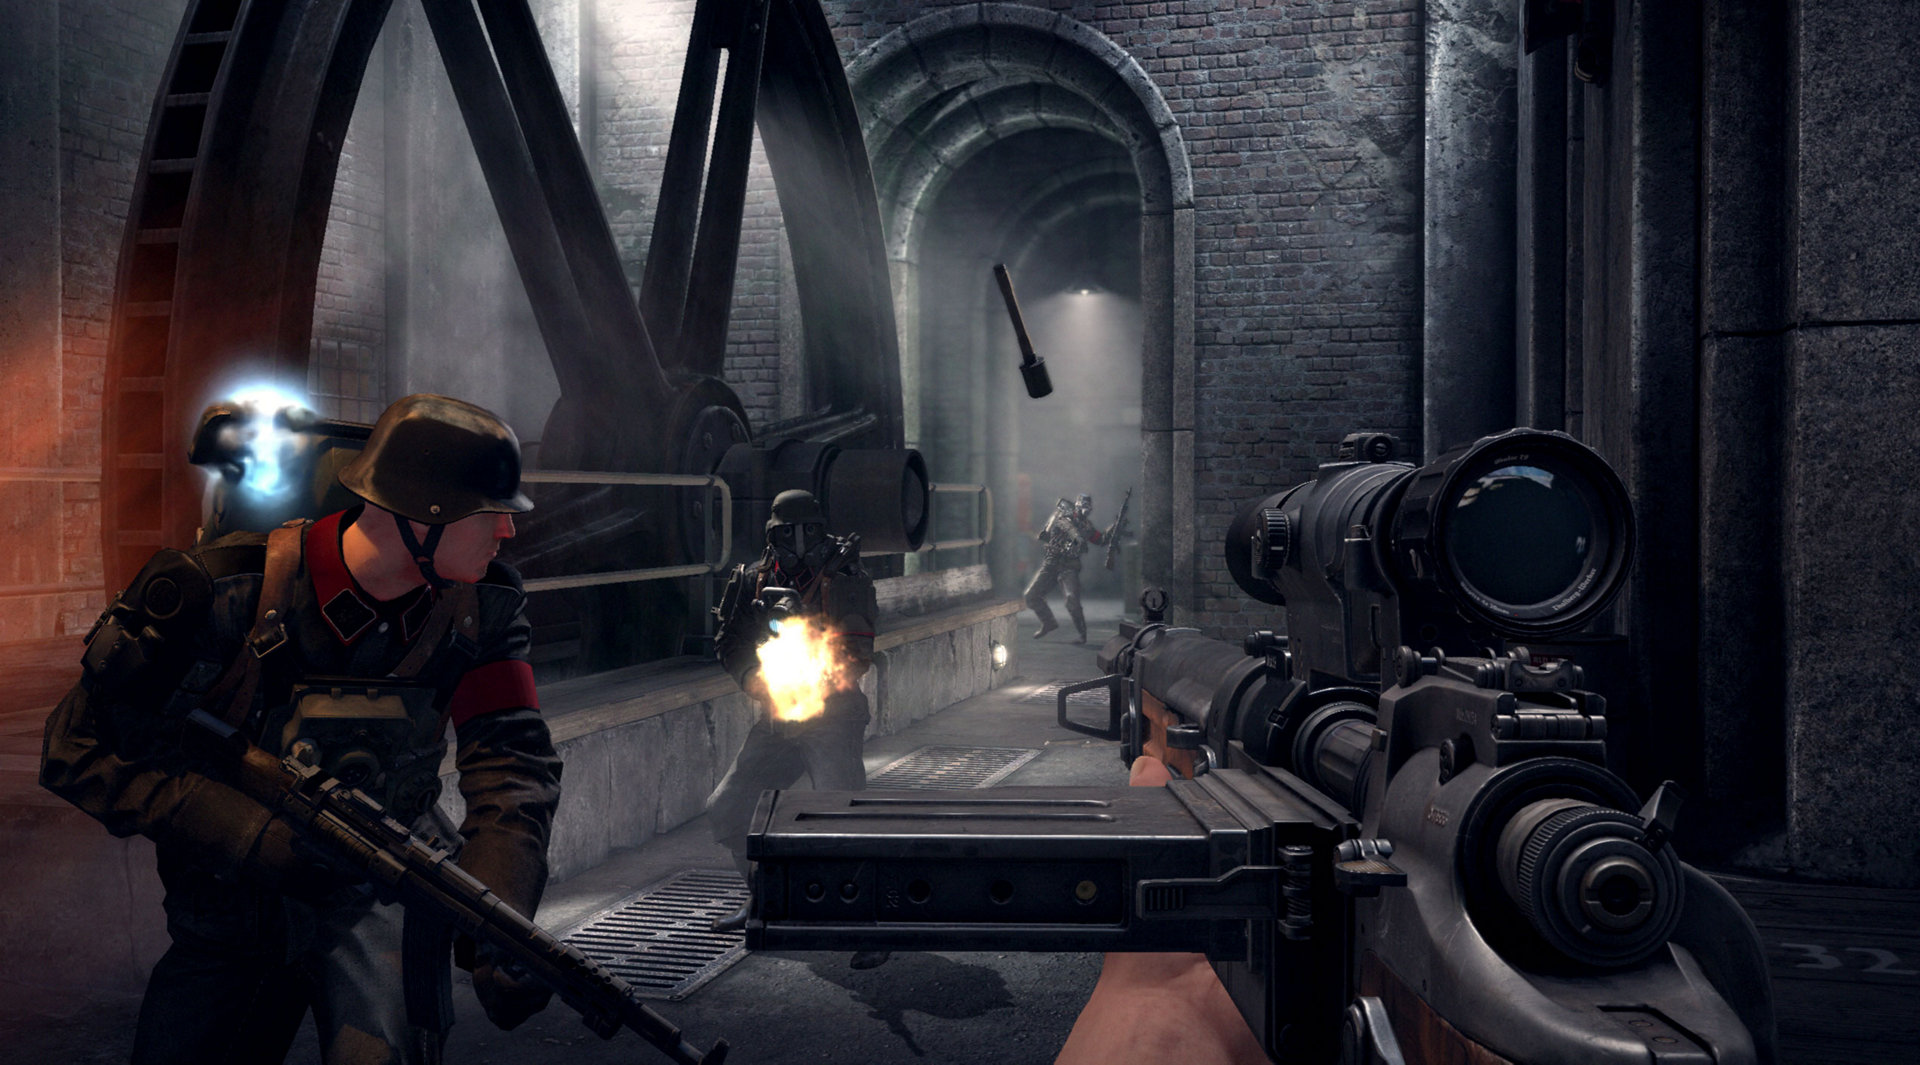 wolfenstein-the-old-blood-screenshot-05-